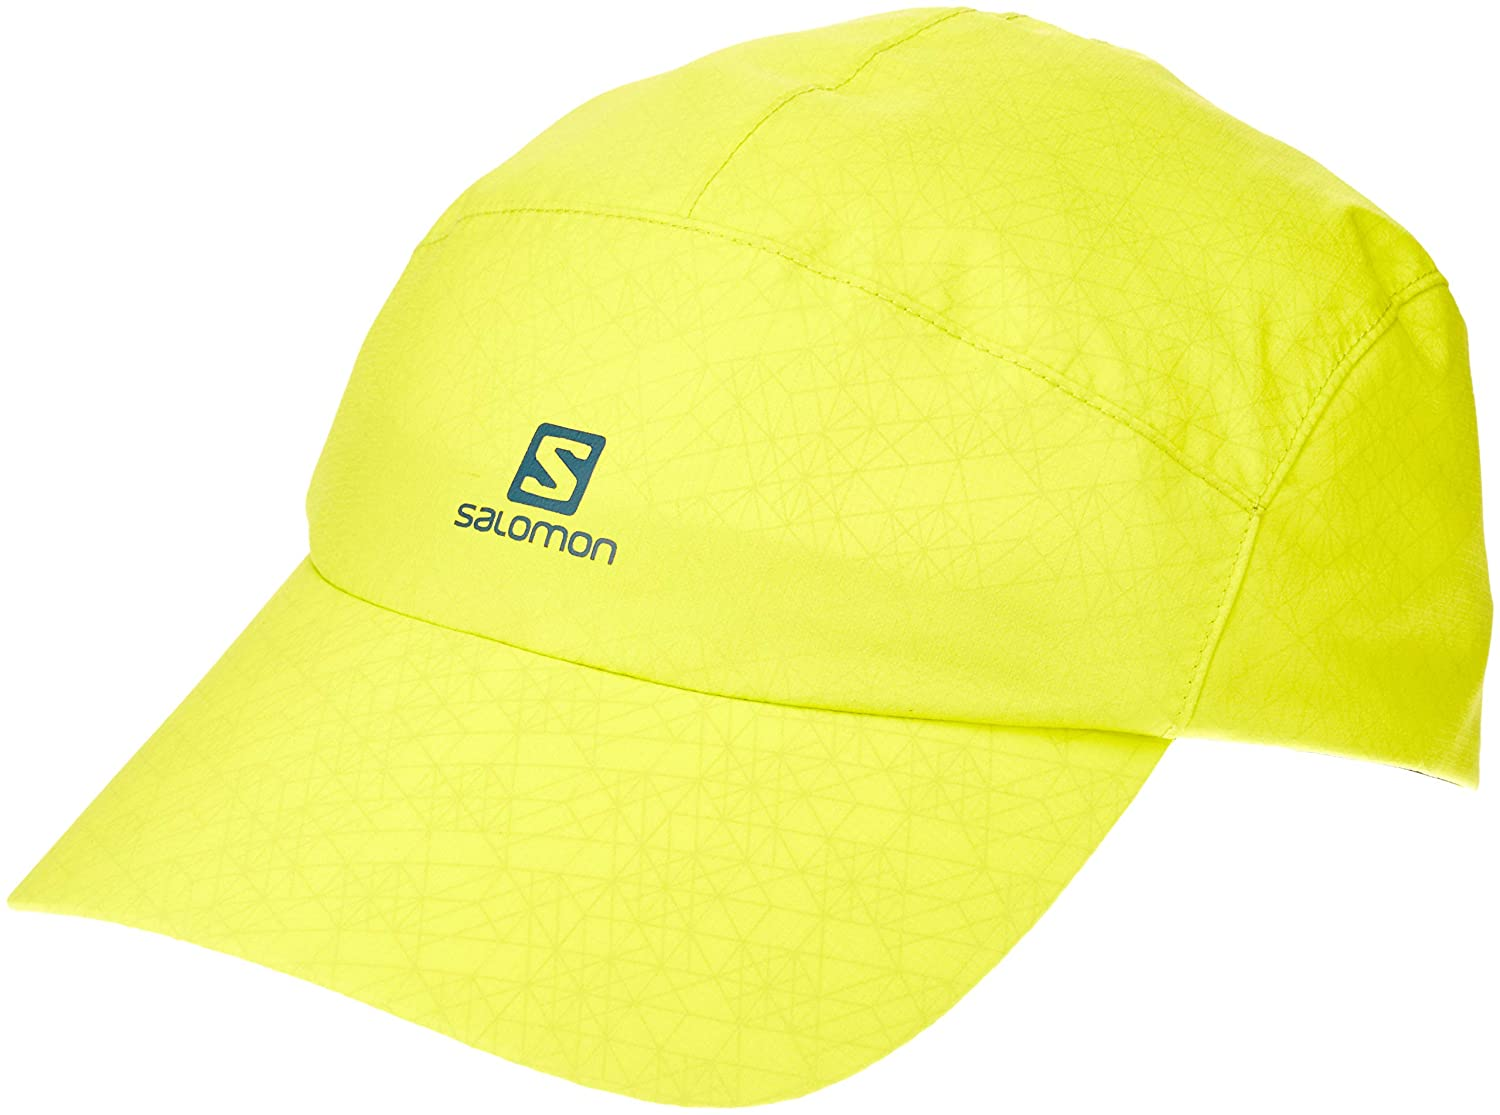 SALOMON Cap Waterproof Cap - Gorra, Unisex Adulto, Amarillo ...